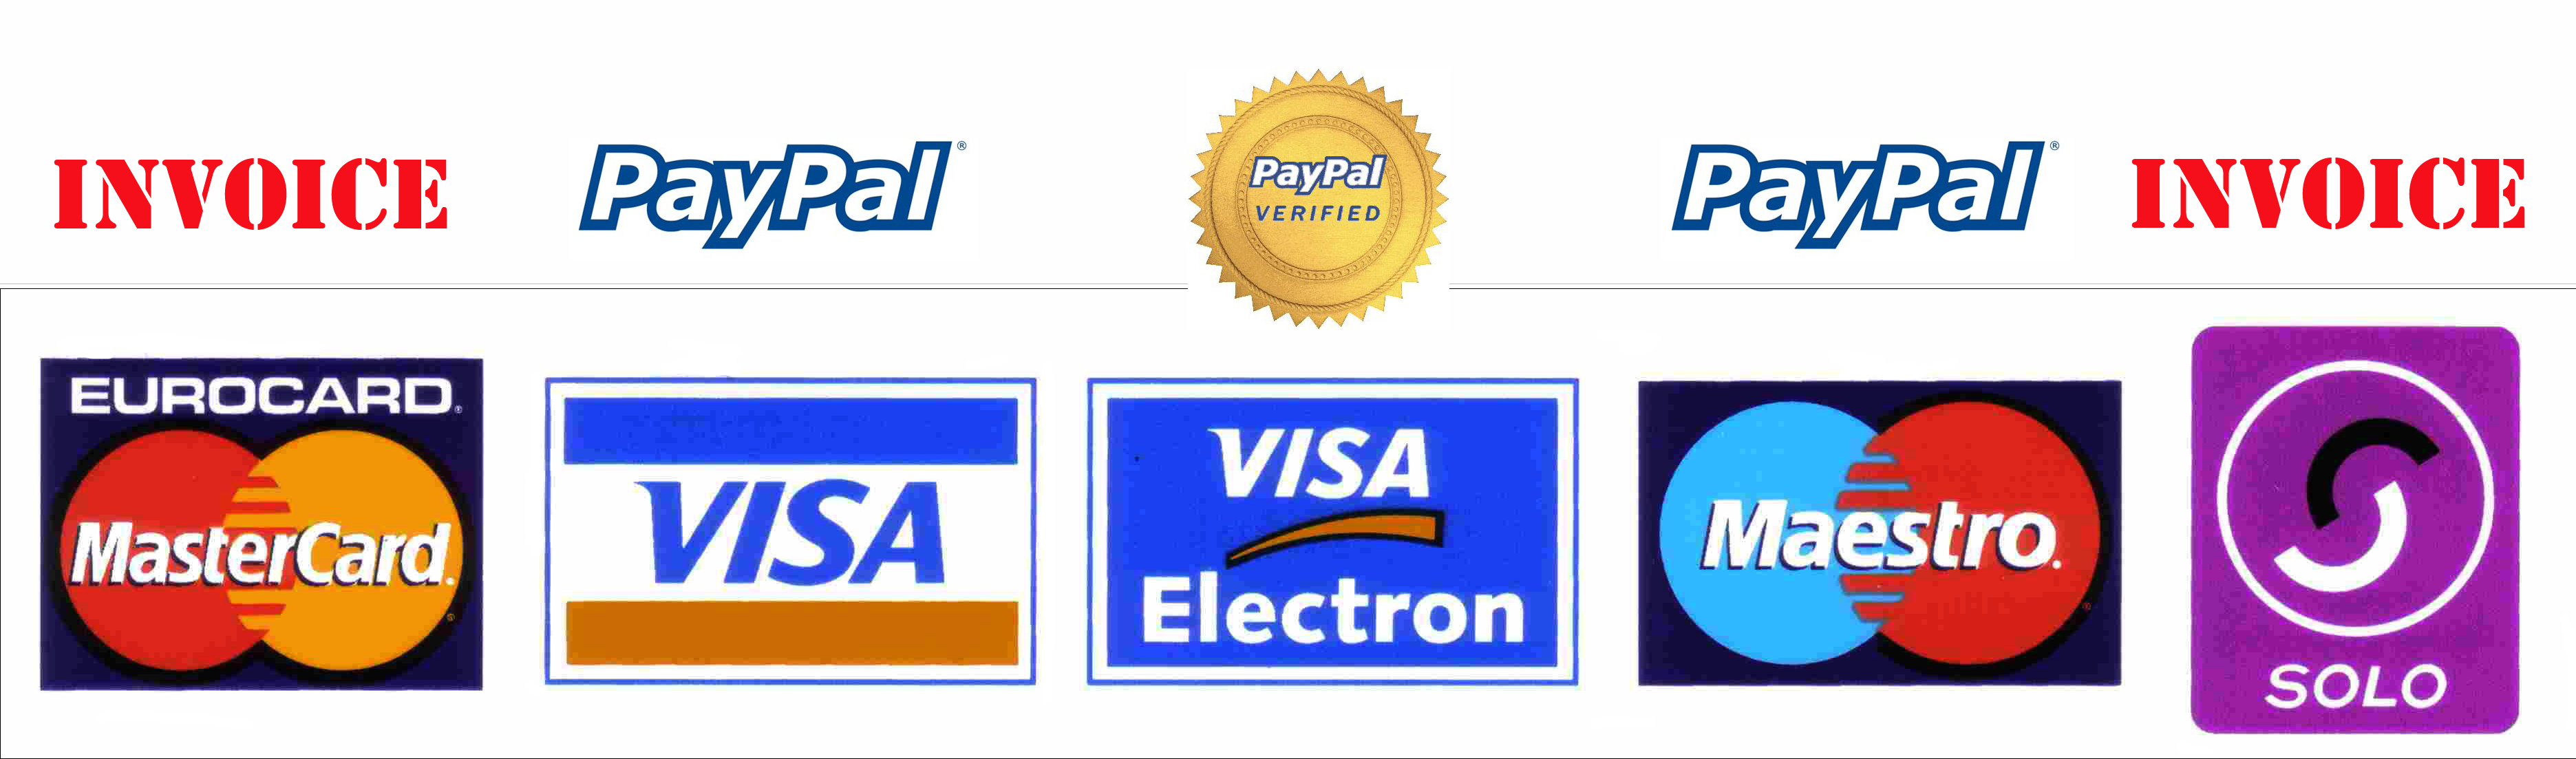 the digital network credit cards accepted image